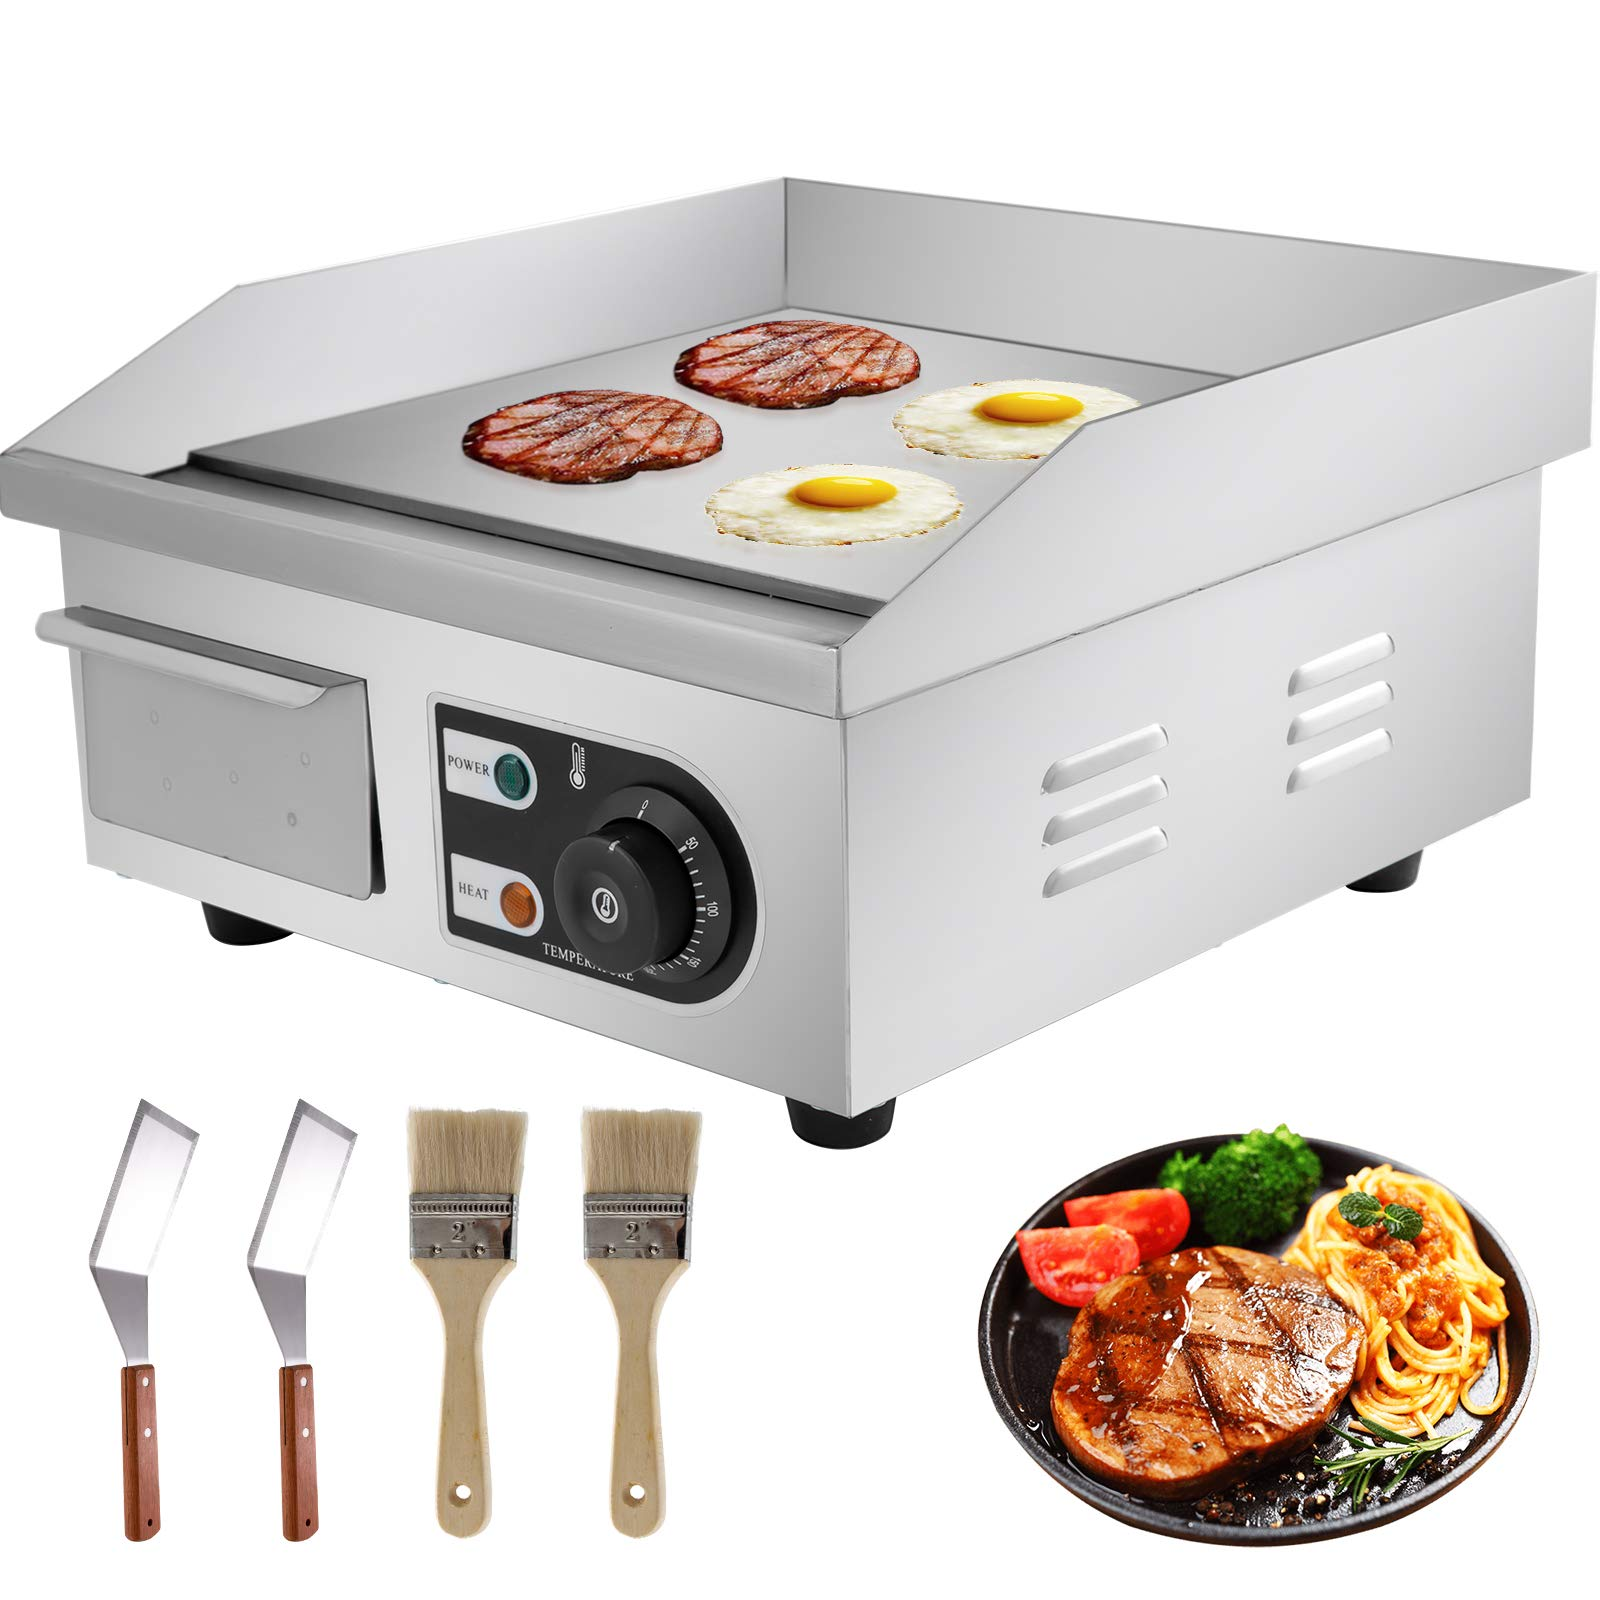 """VEVOR 14"""" Electric Countertop Flat Top Griddle 110V 1500W Non-Stick Commercial Restaurant Teppanyaki Grill Stainless Steel Adjustable Temperature Control 122°F-572°F, Sliver"""